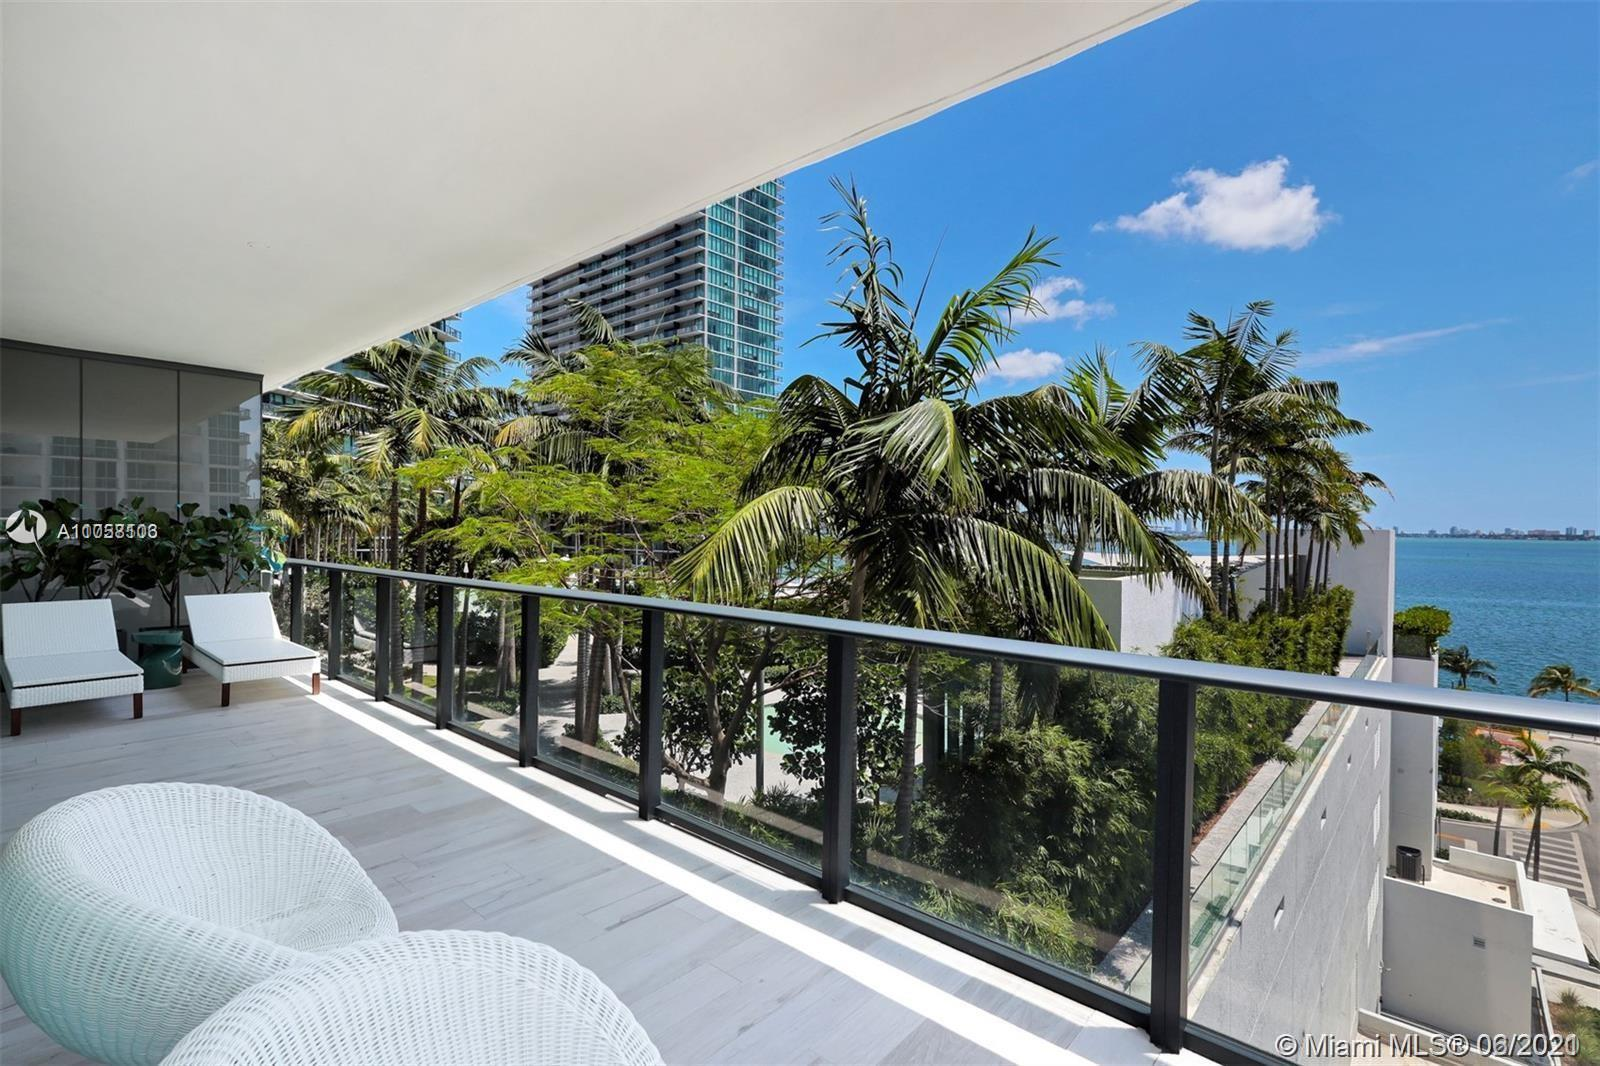 Sophisticated 4 Bedroom + Den in the Gran Paraiso by Piero Lissoni. Unit features luxurious finishes